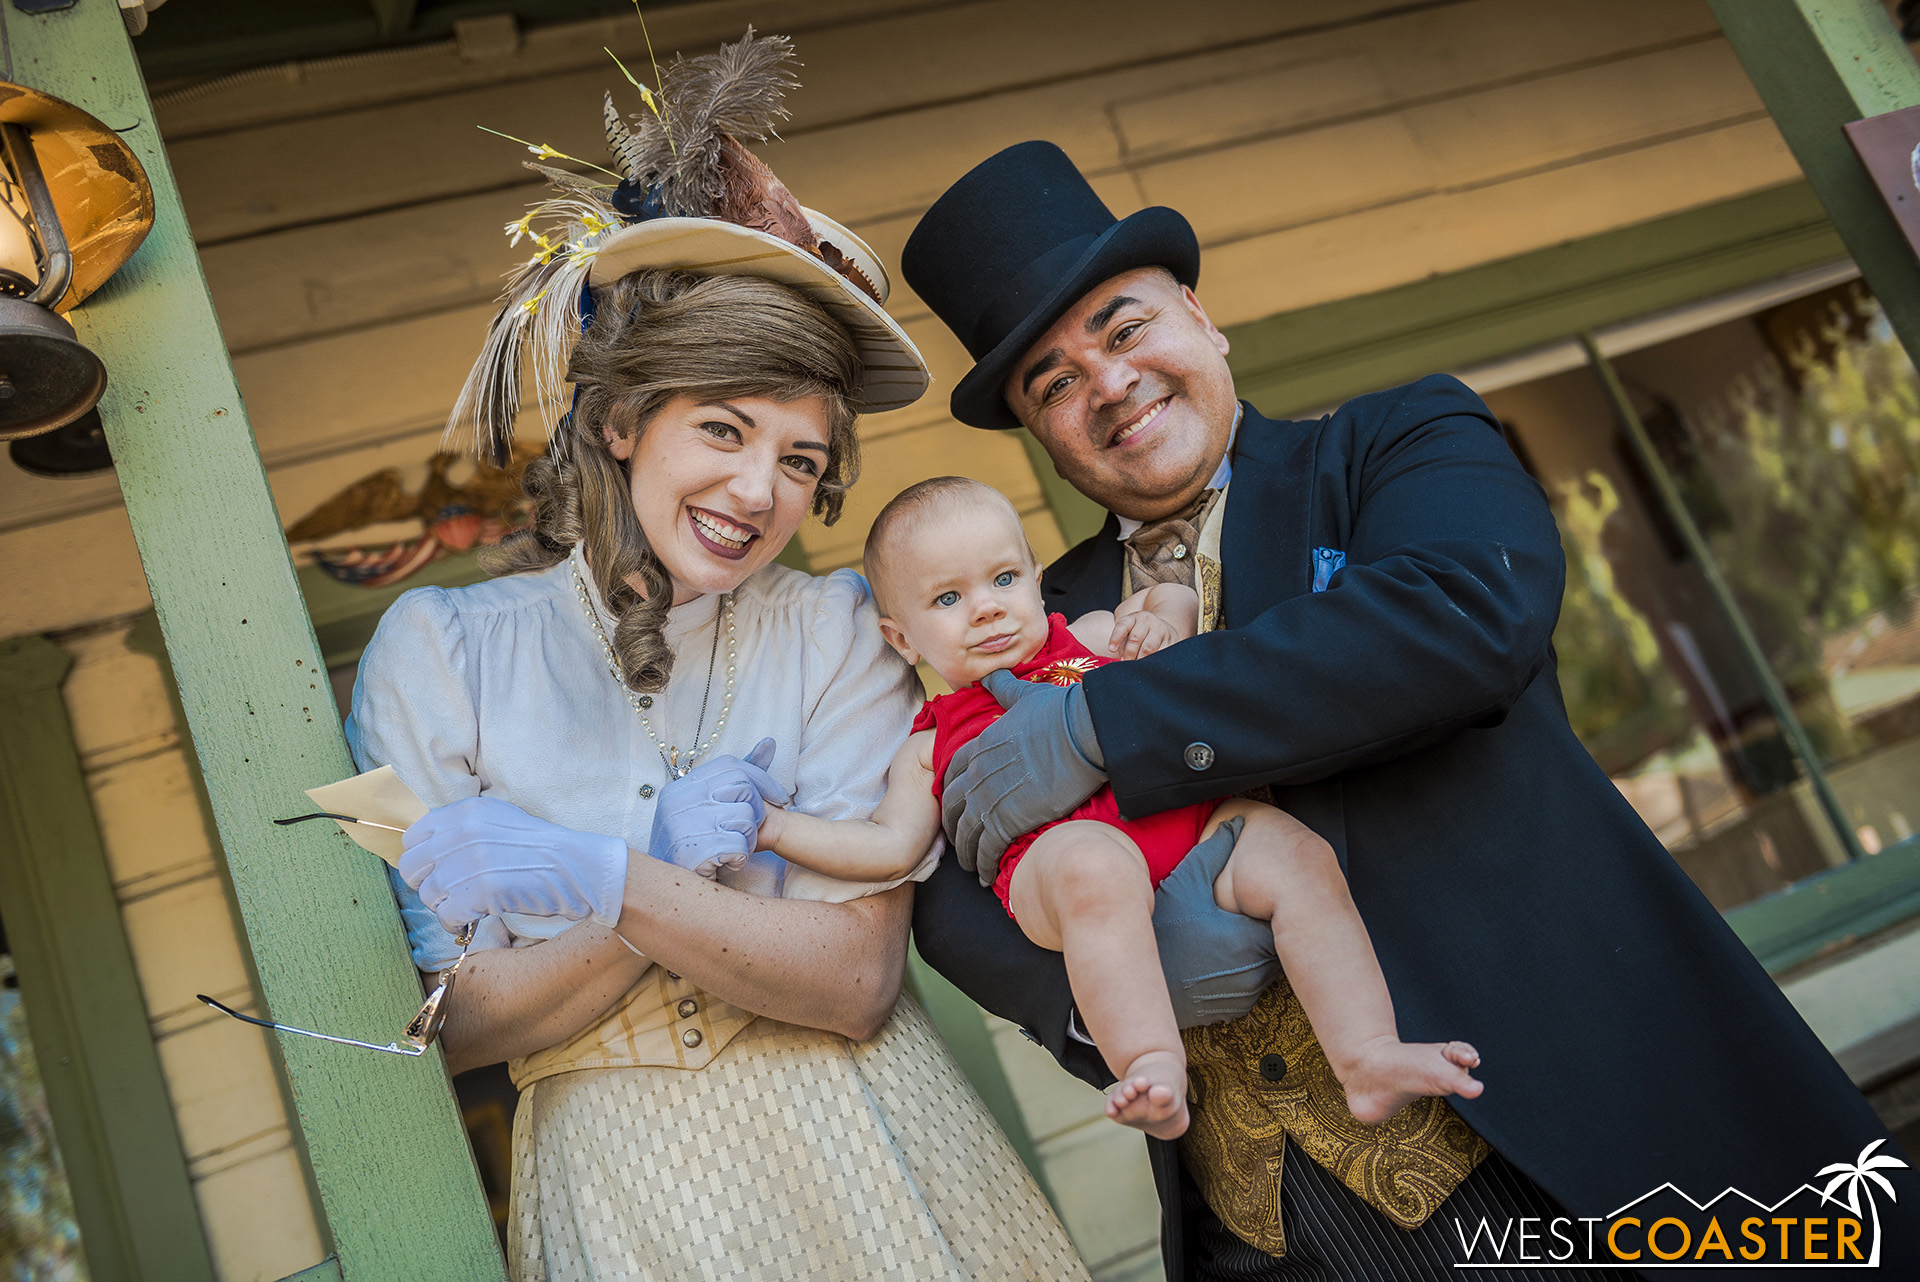 Mayor Horton Parnell and his lovely wife, Pearl, pose for a photo.  Even though this is not an election year, the couple can't get an early enough start kissing babies and politicking!